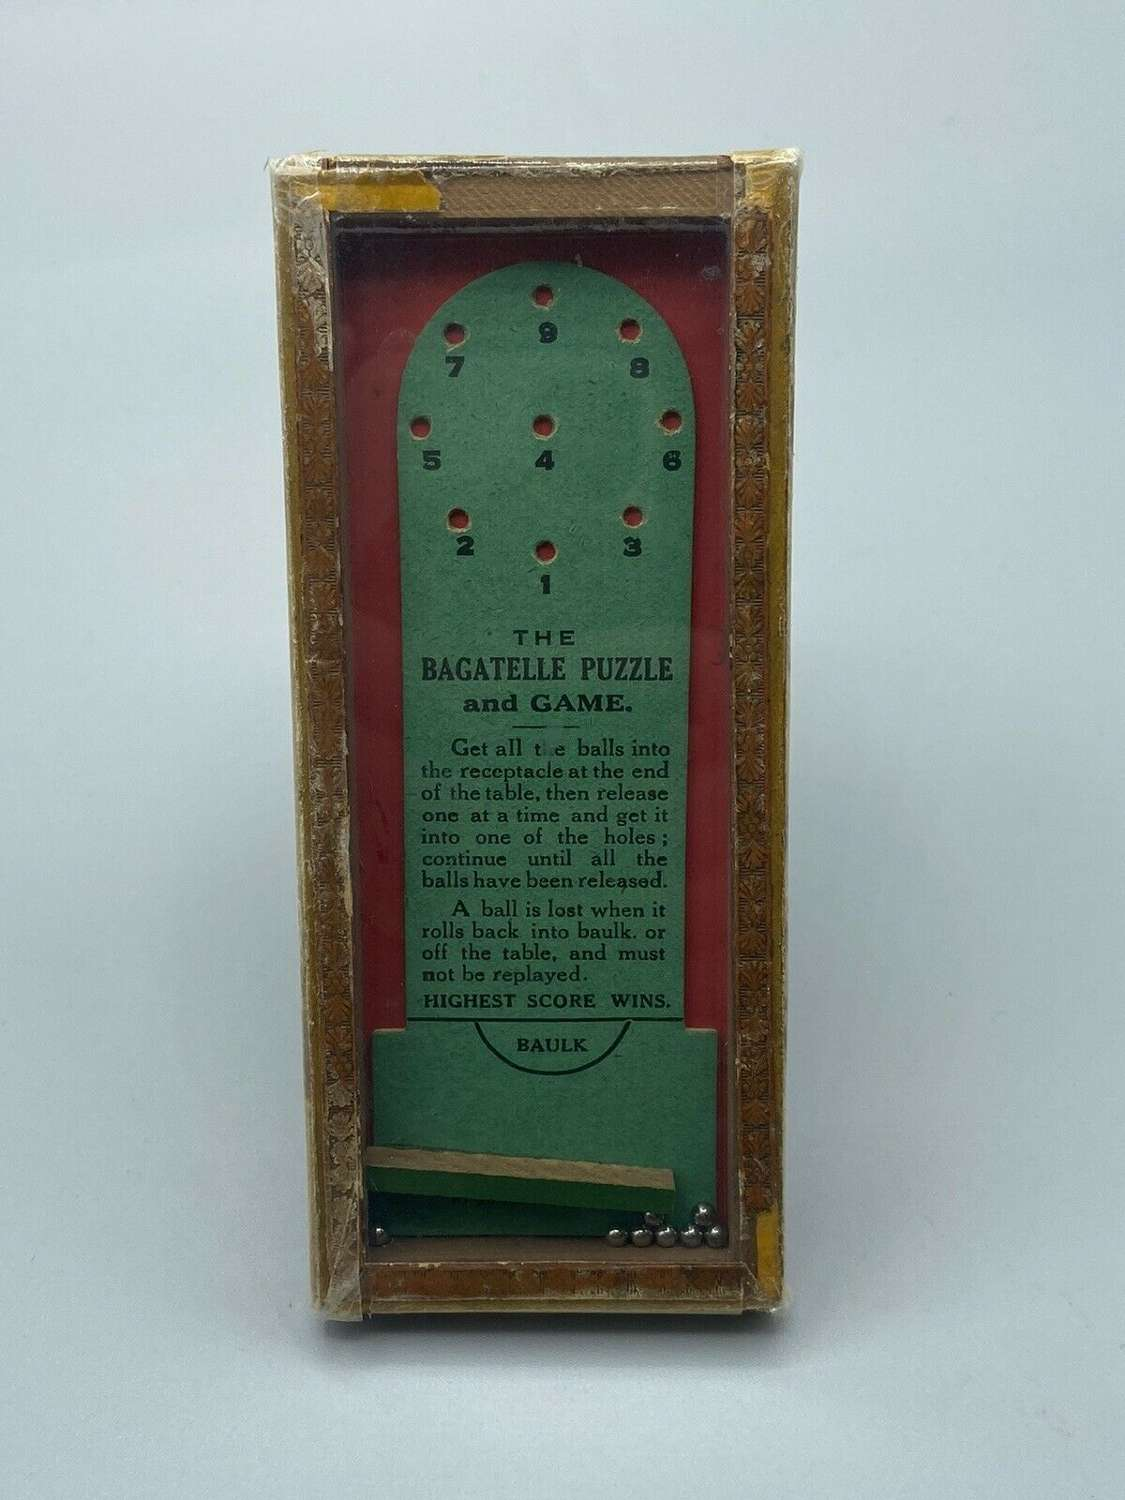 WW2 British Homefront Children's Game The bagatelle puzzle and game